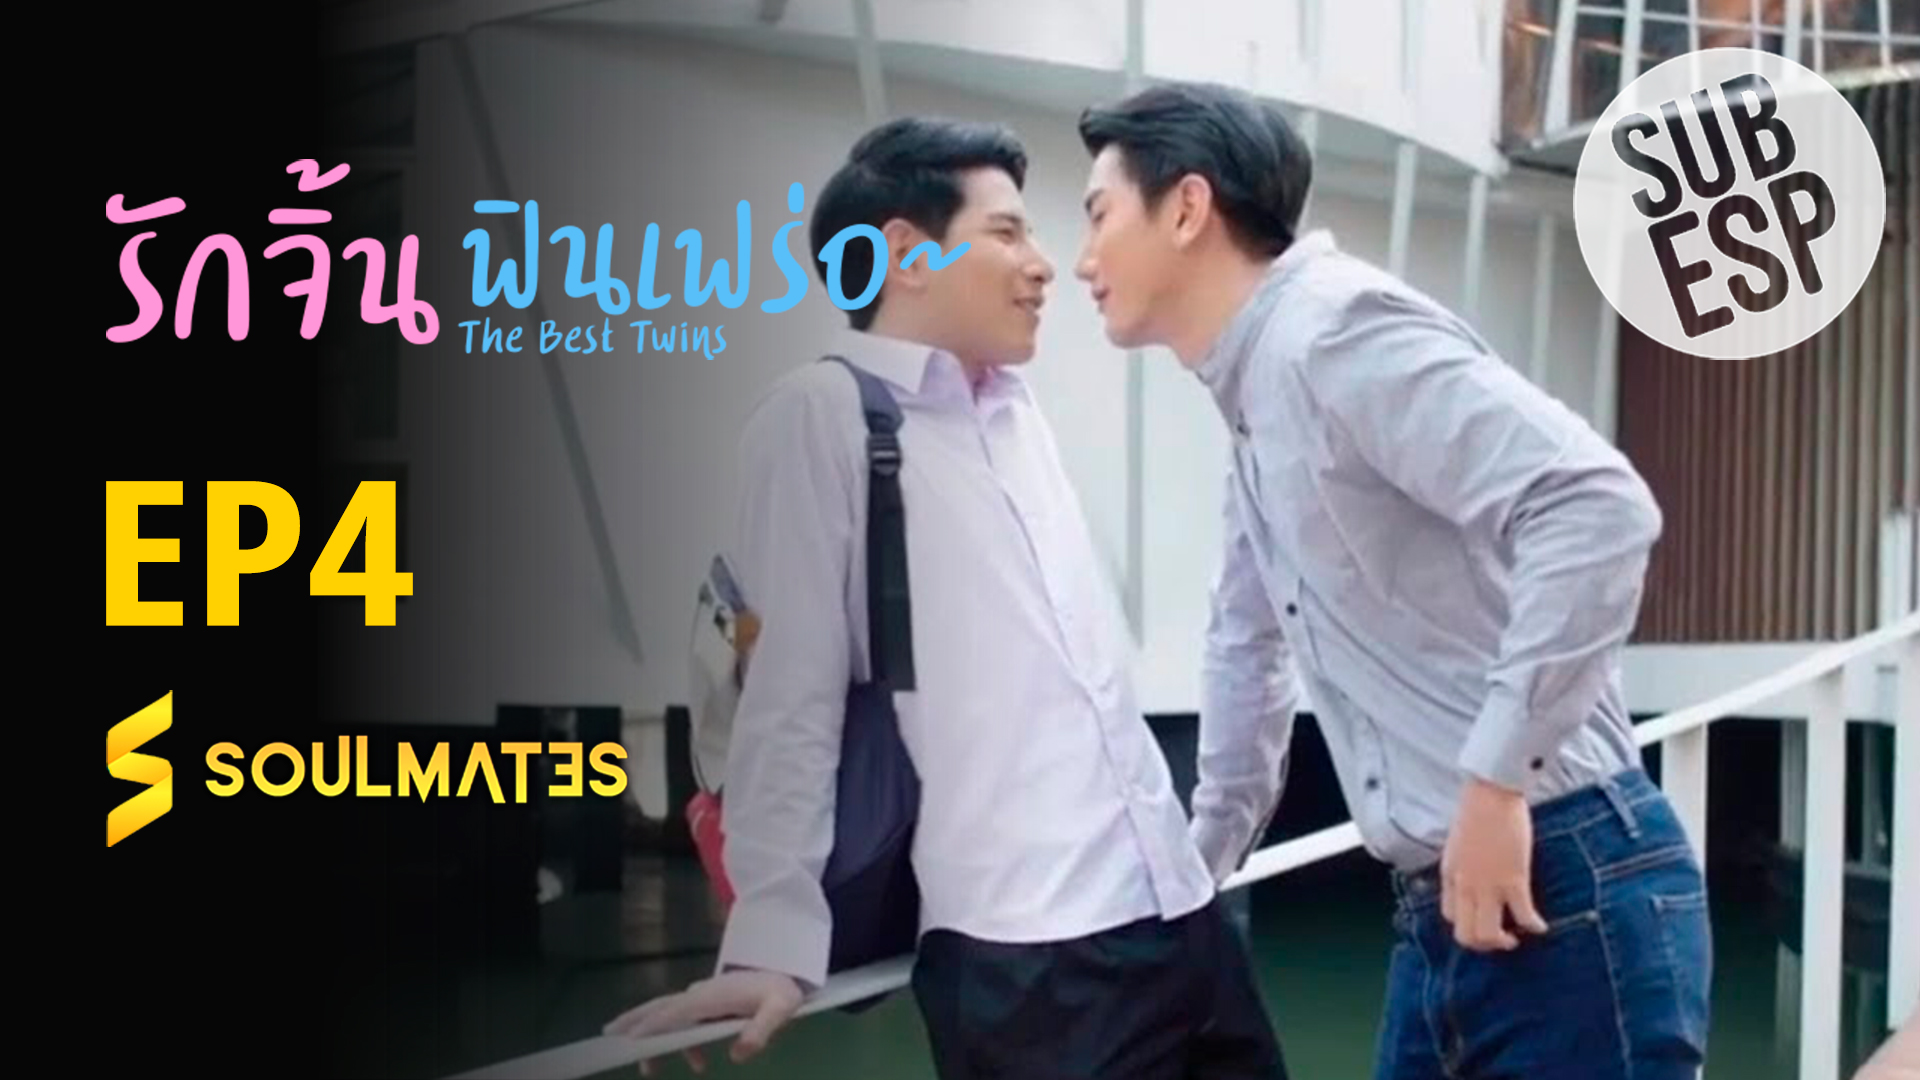 The best twins: 1×4